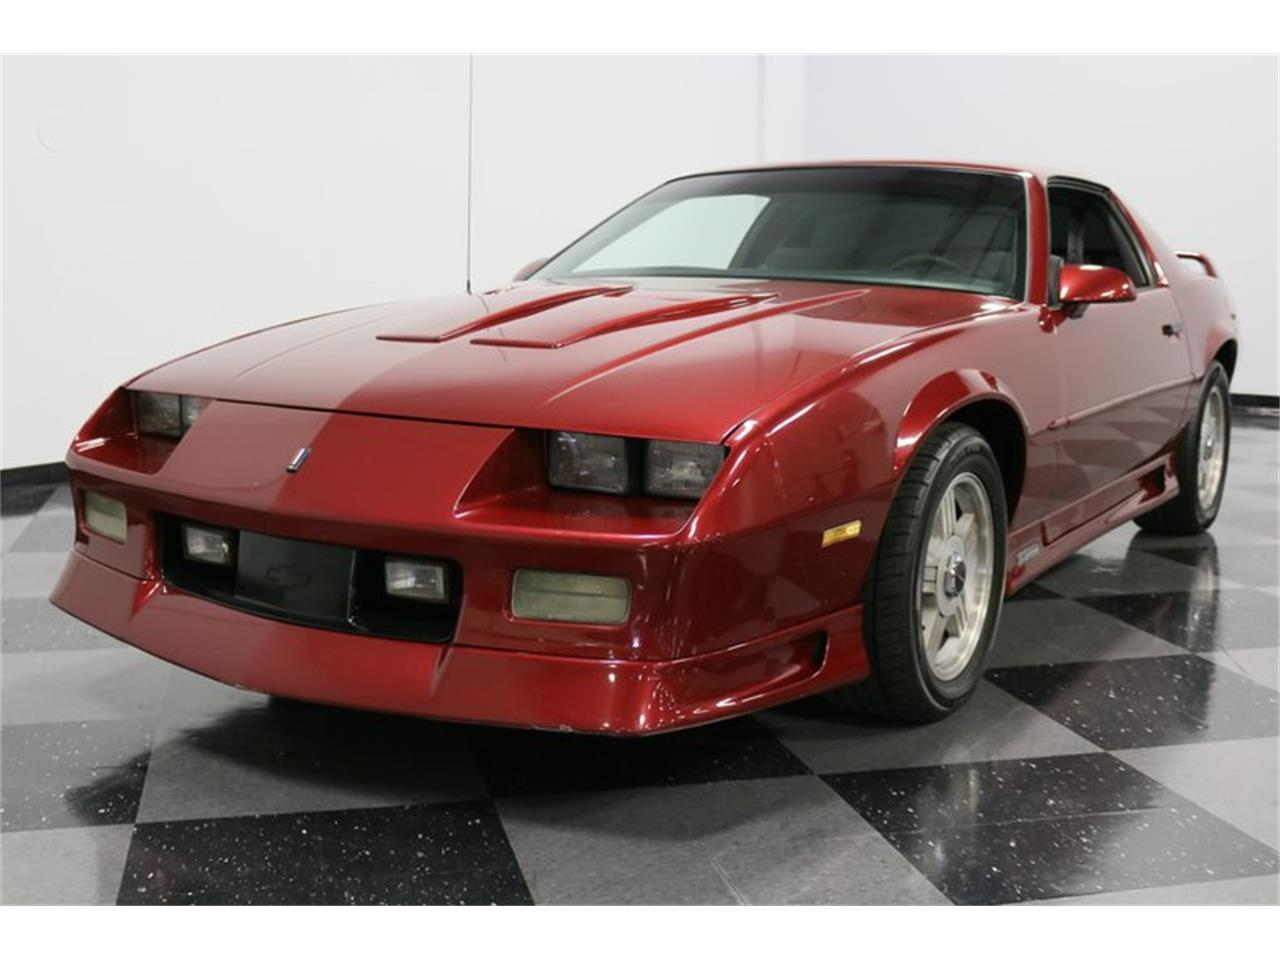 Large Picture of 1991 Camaro - $11,995.00 Offered by Streetside Classics - Dallas / Fort Worth - PBLJ